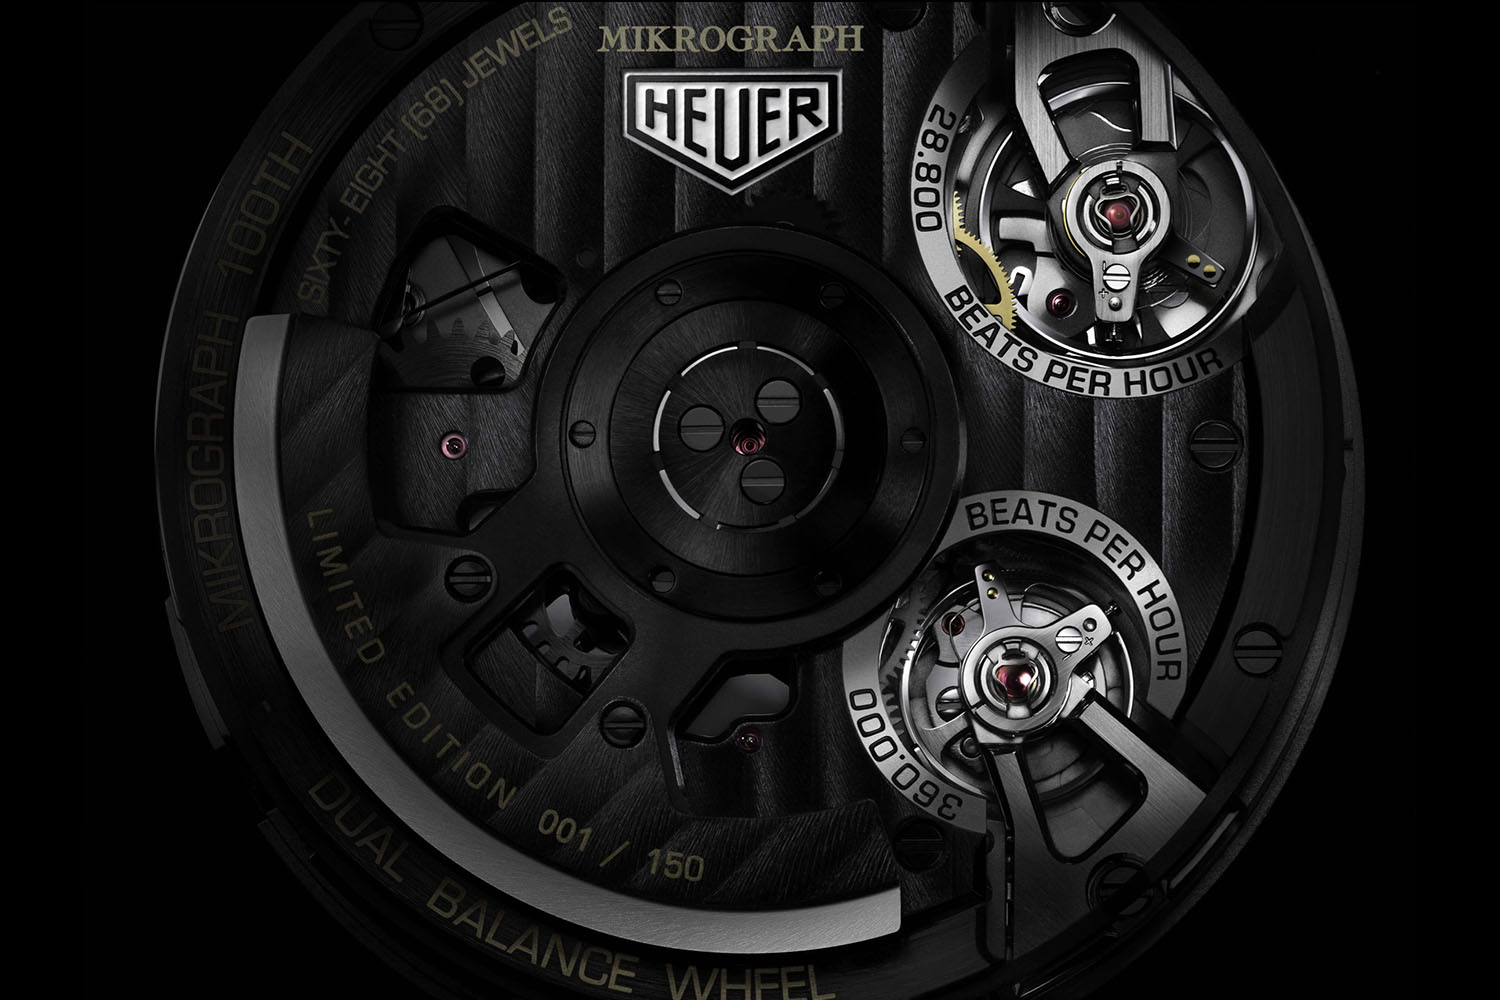 Tag Heuer Mikrograph 100th anniversary 2016